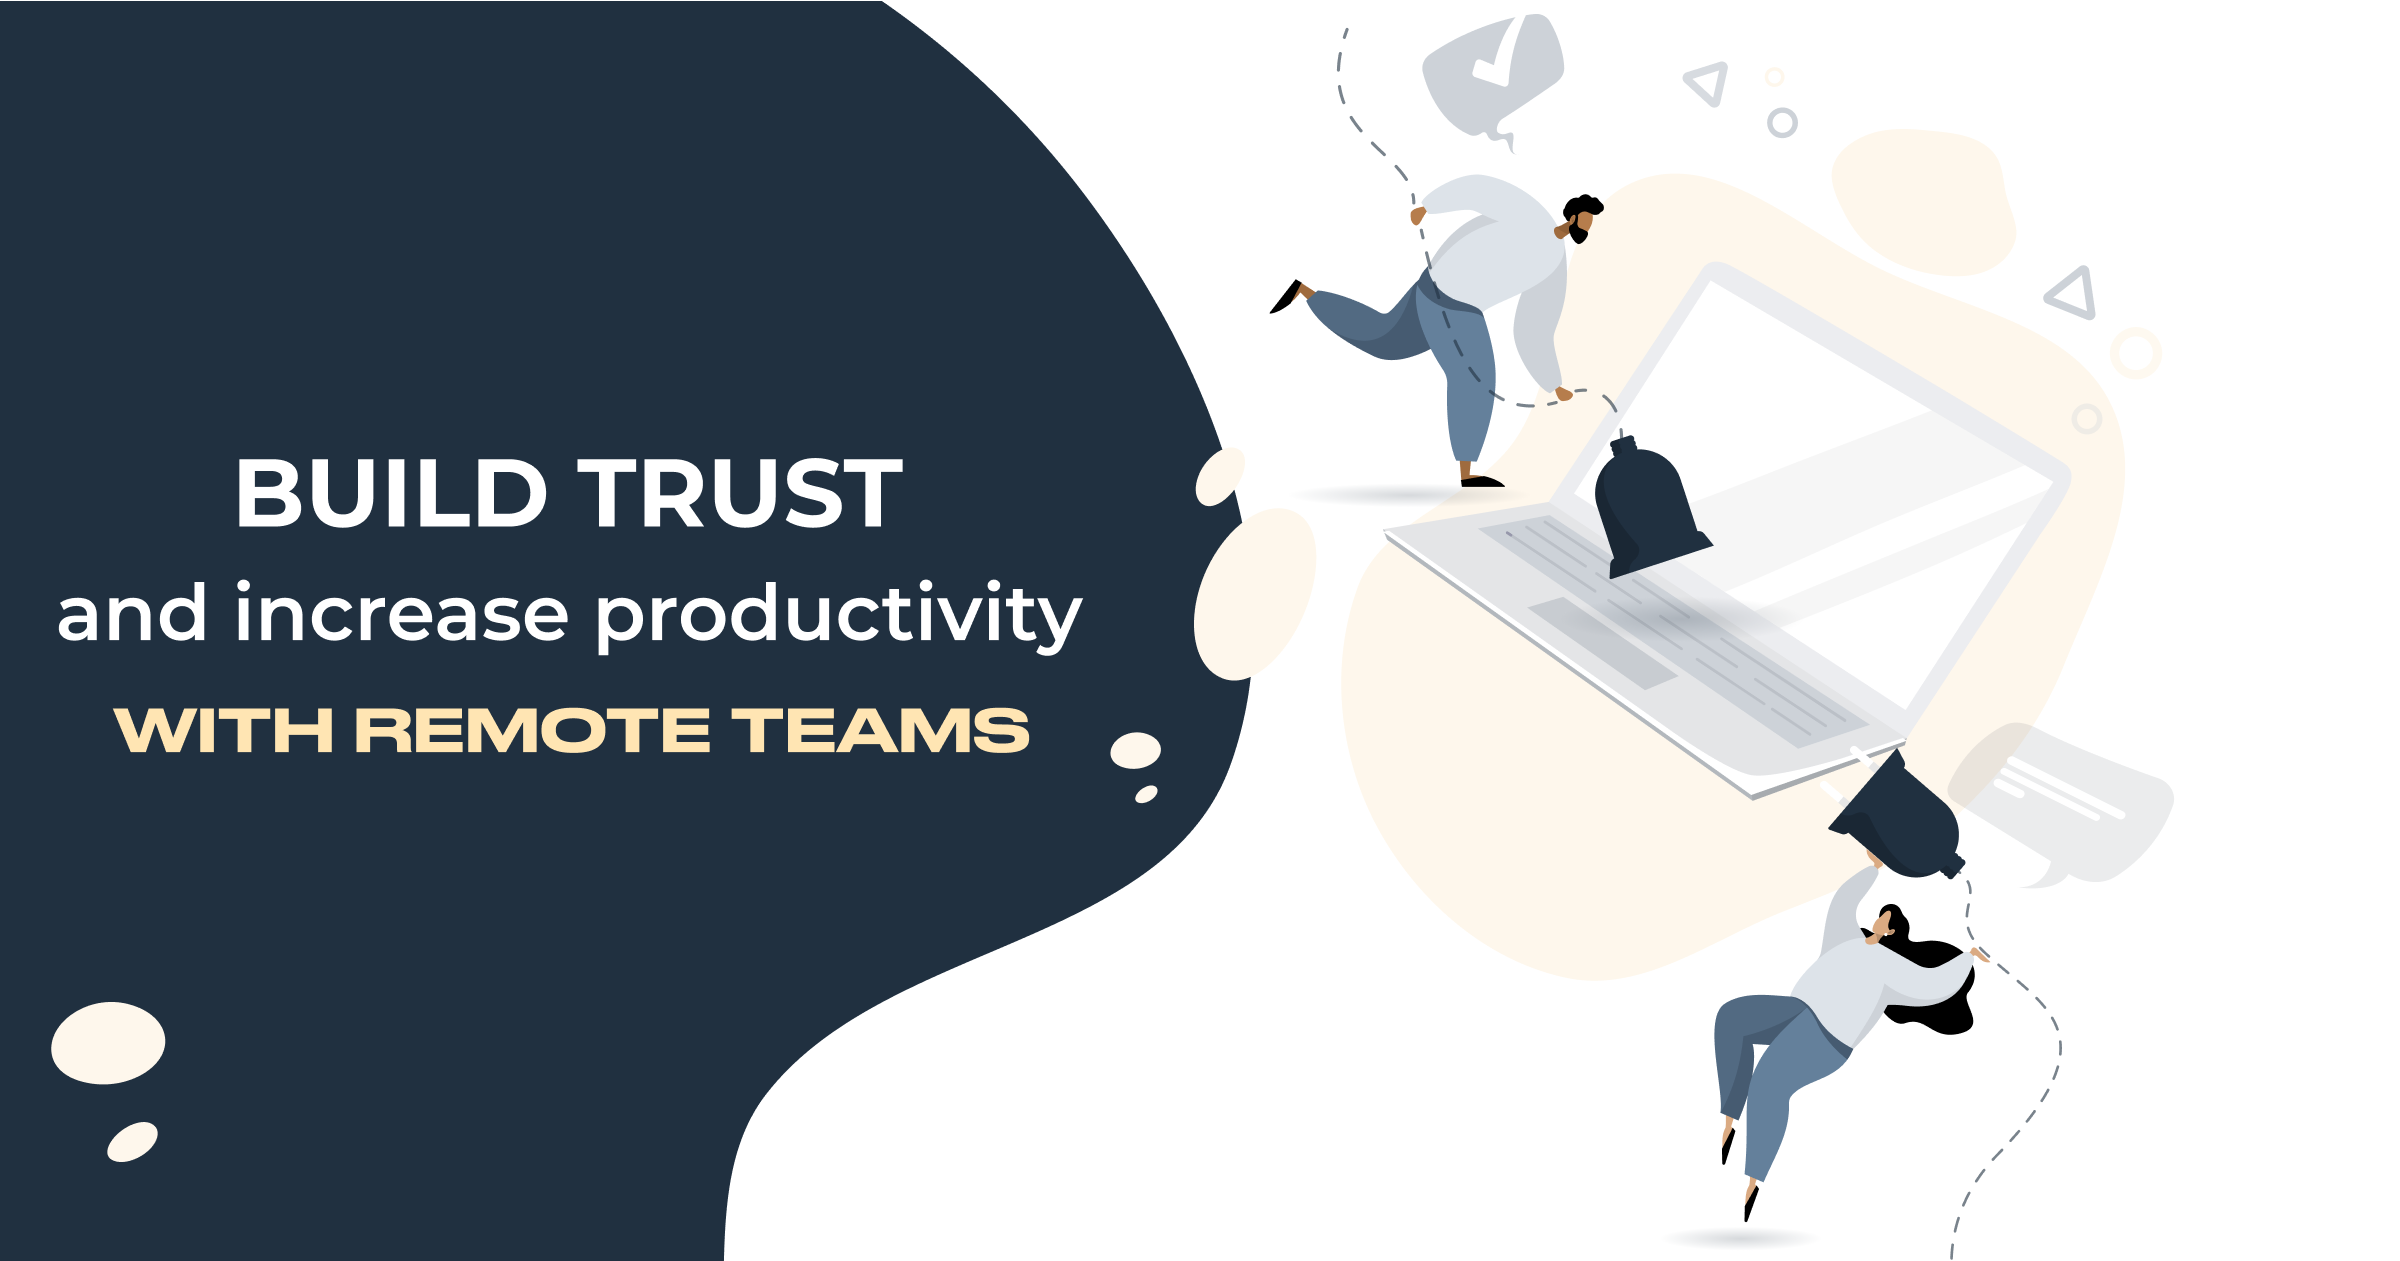 Build trust and increase productivity with remote teams